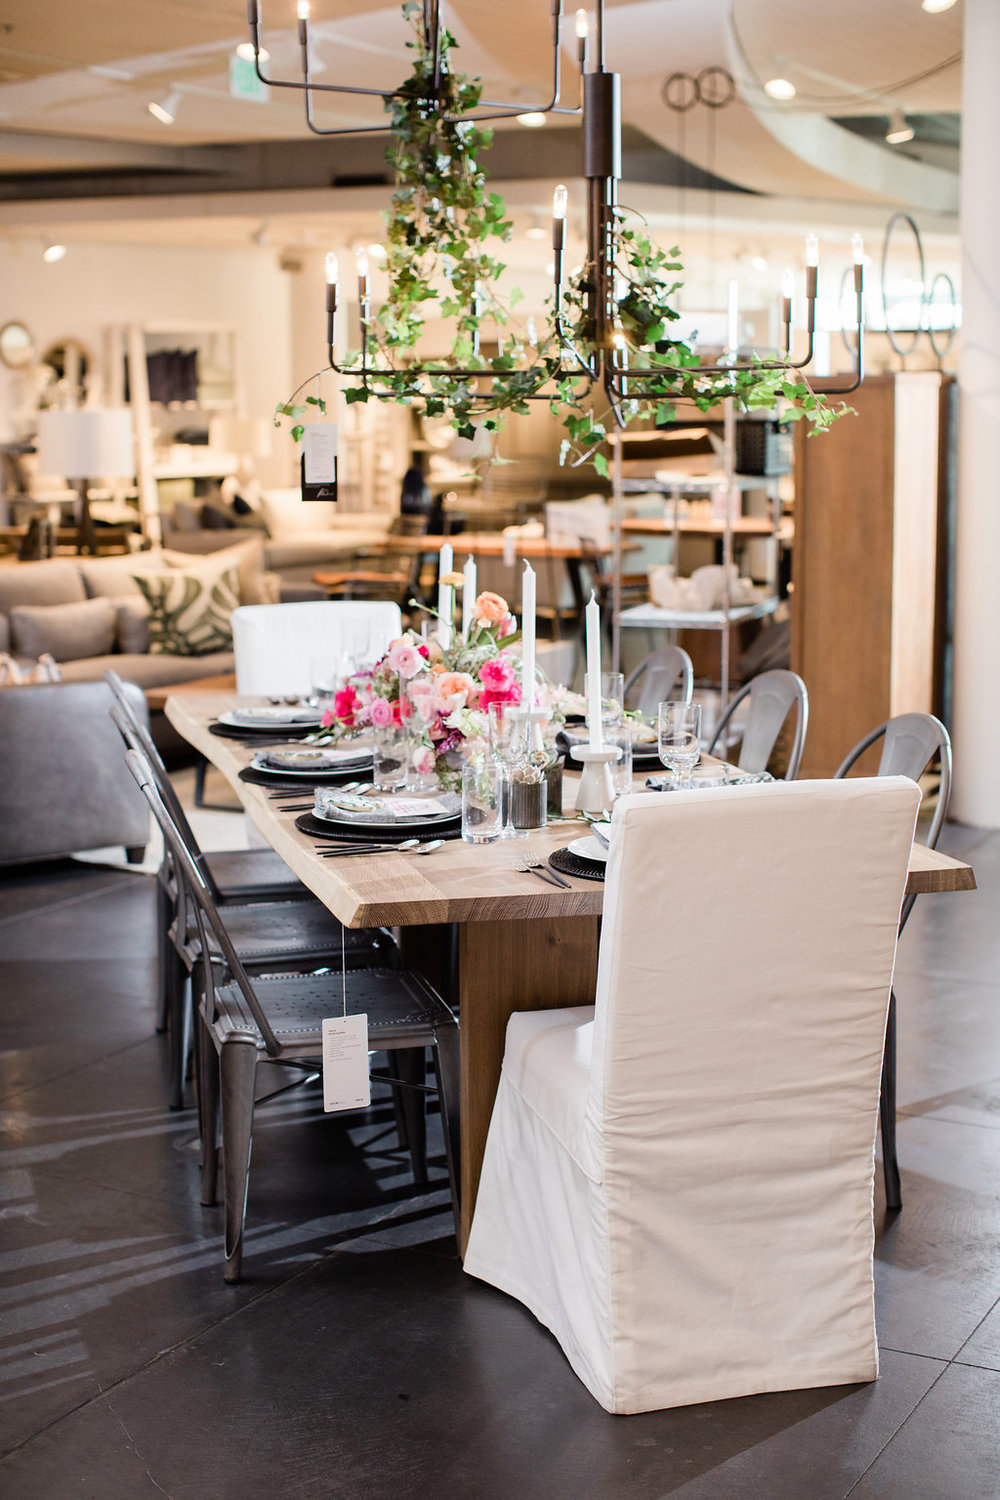 Crate+Barrel-14.jpg